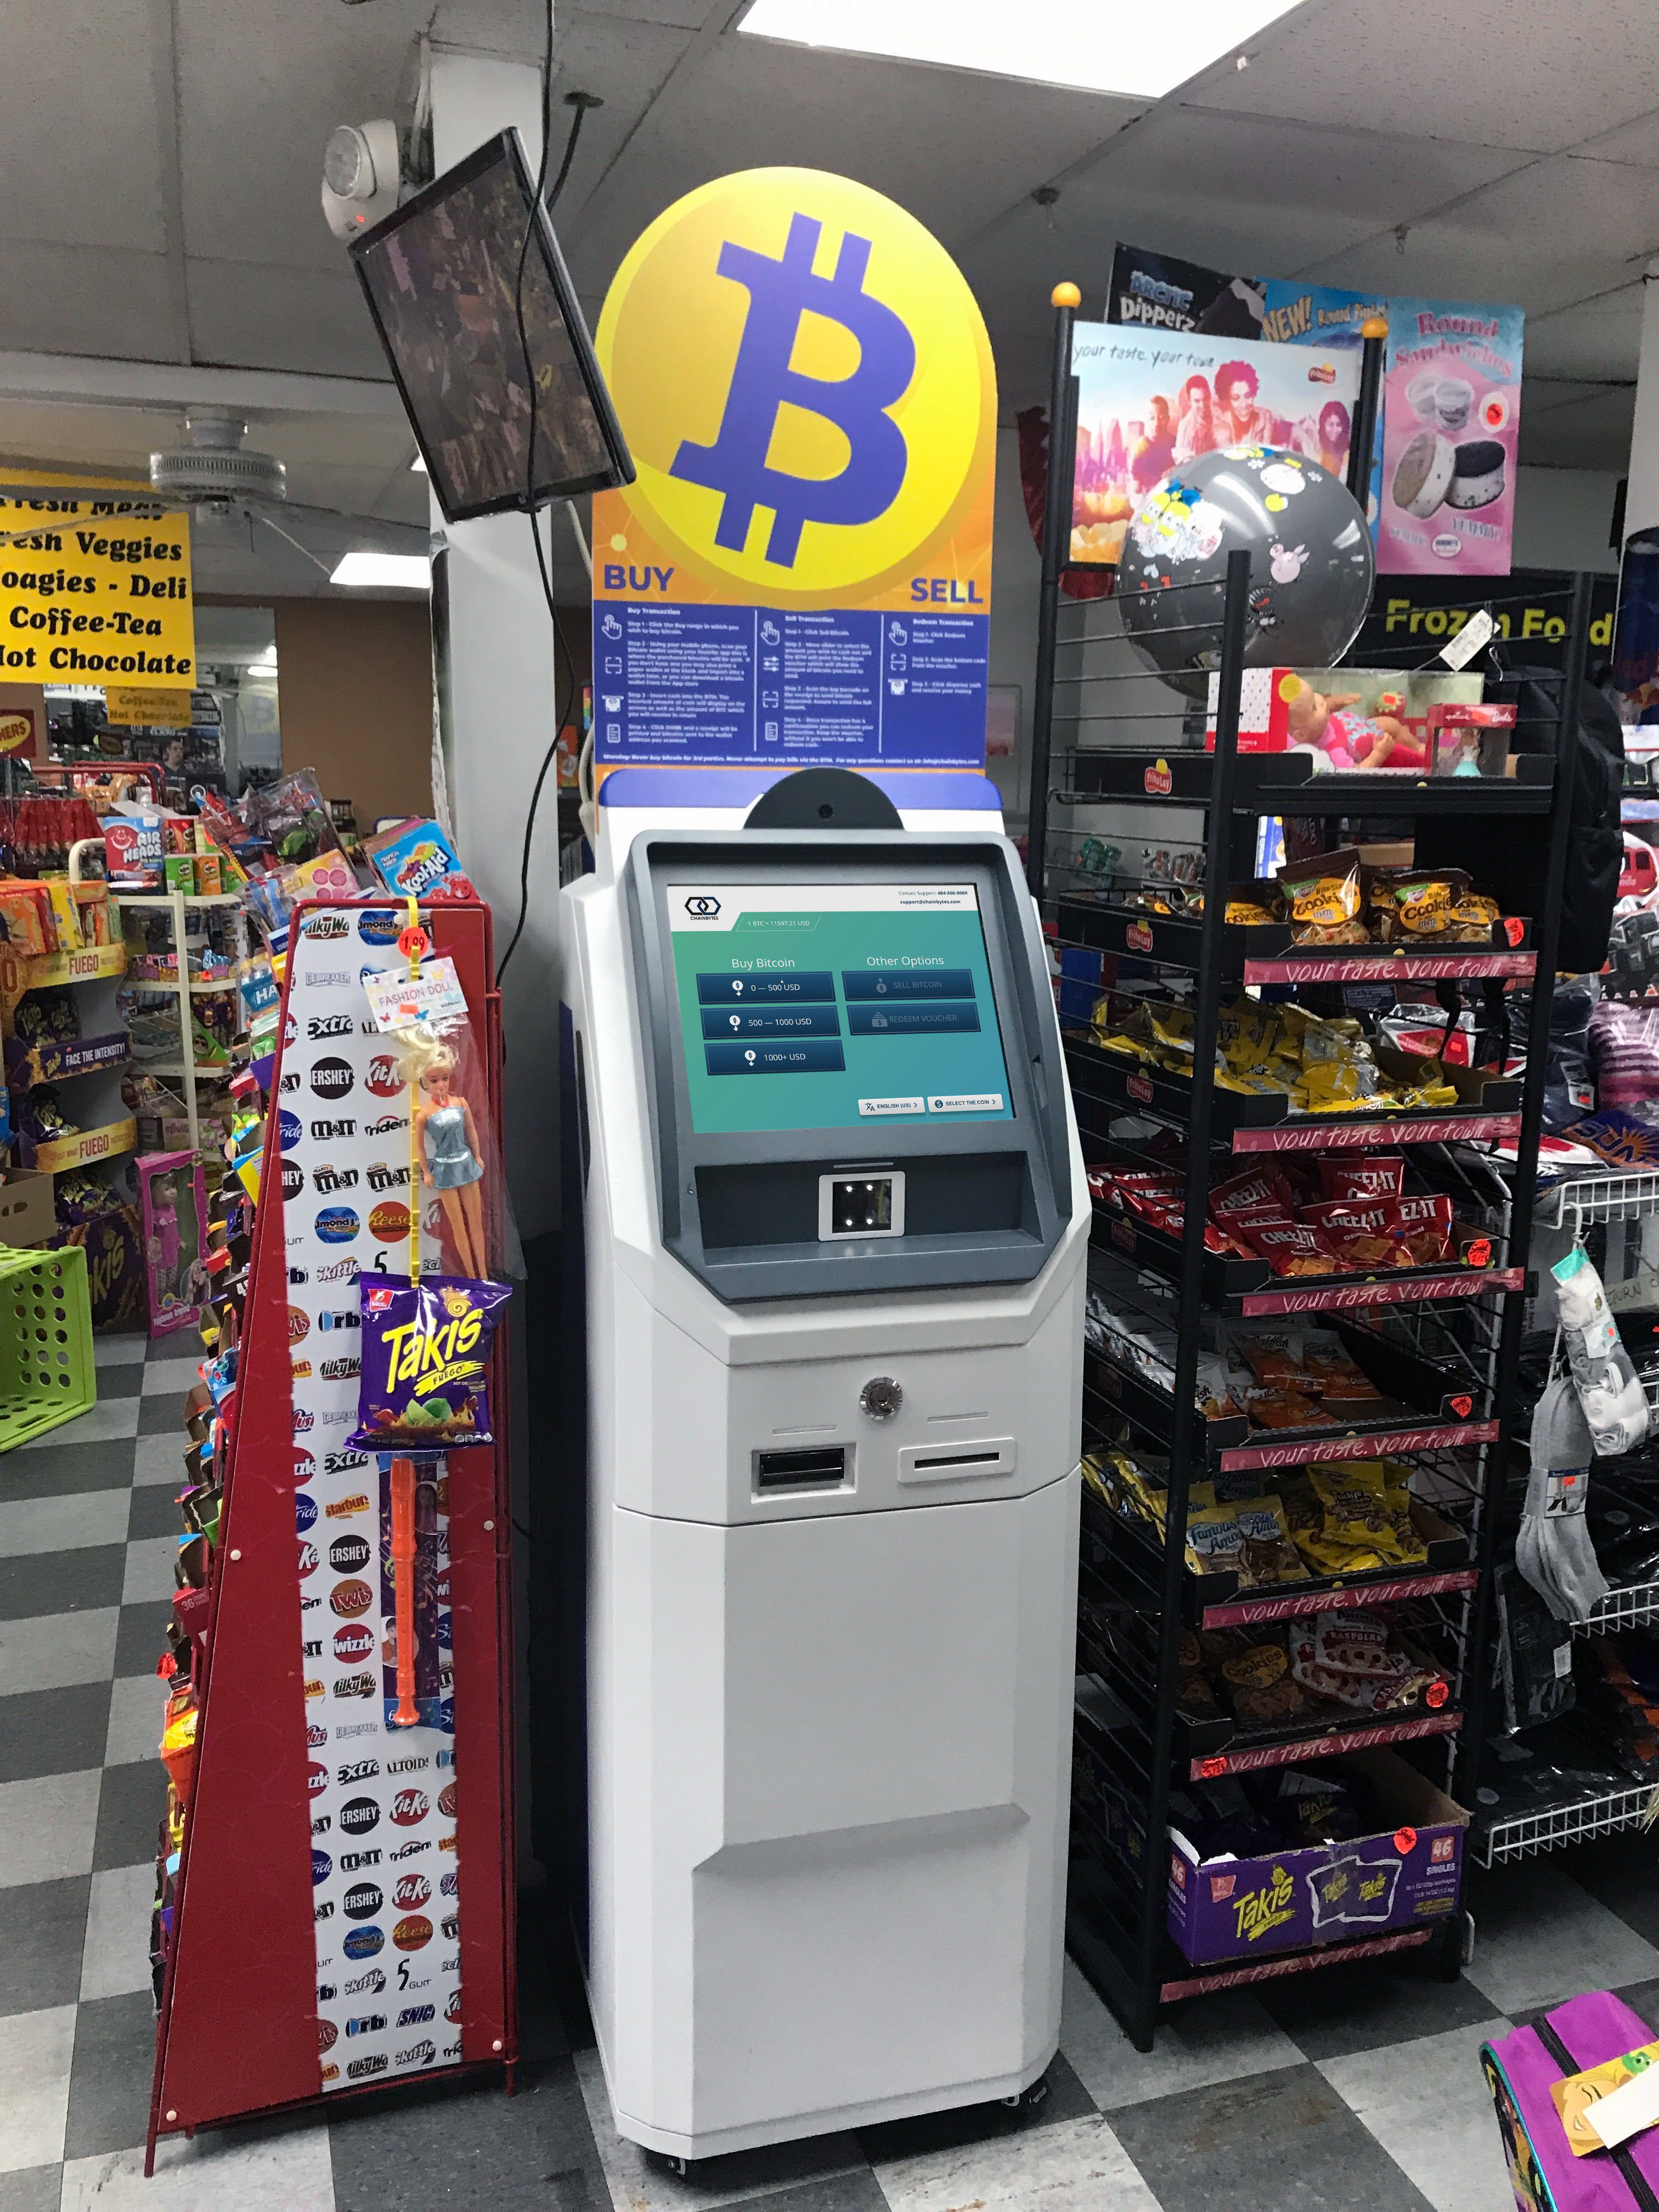 Bitcoin ATM in Easton PA lets you sell bitcoin or buy bitcoin for cash at Easton by Hippo bitcoin ATM manufactured by chainbytes